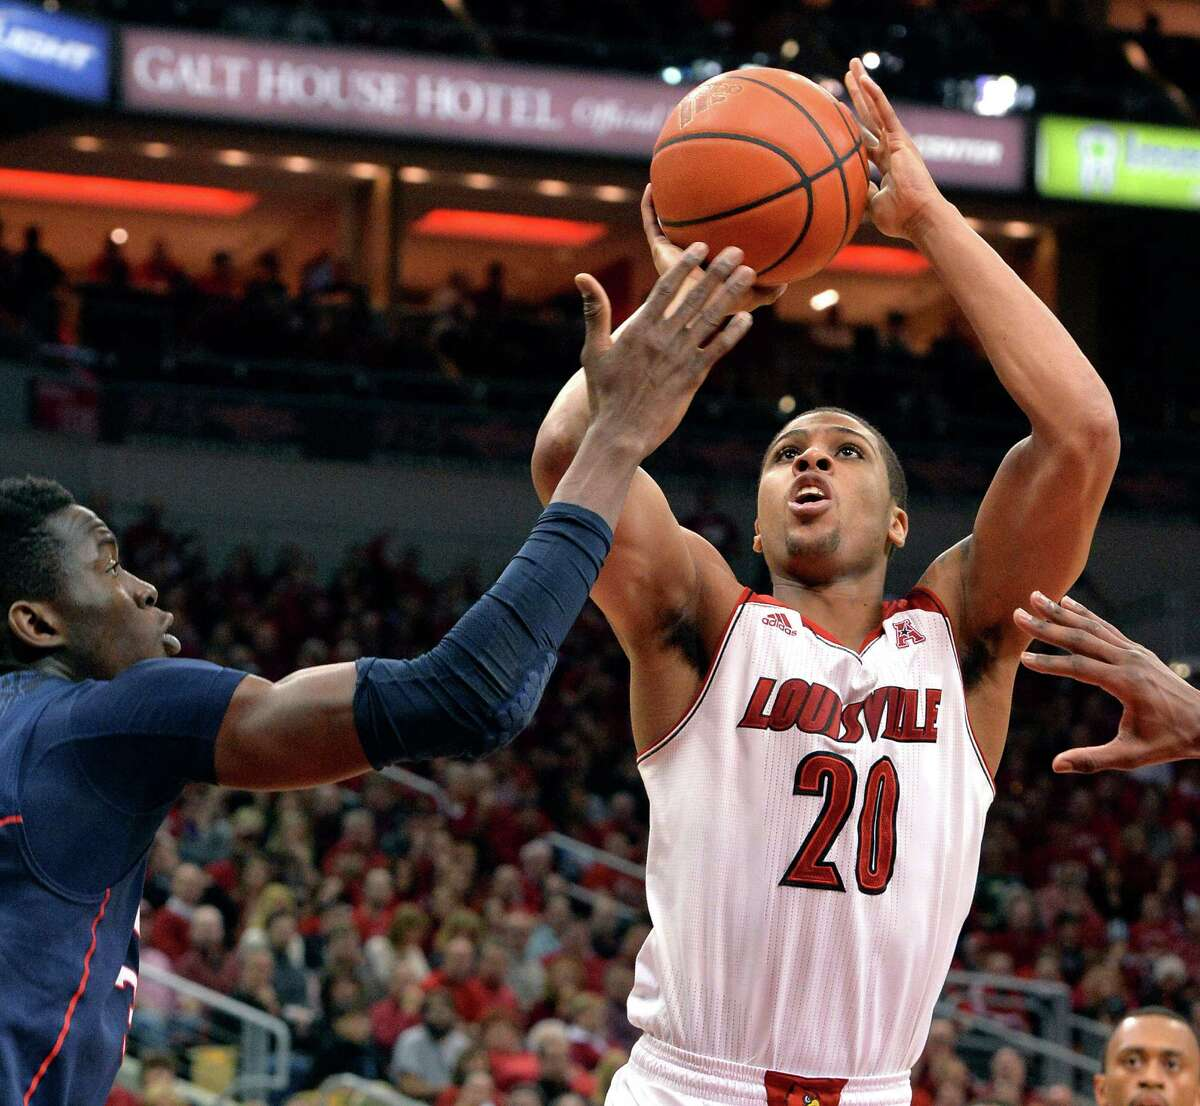 Louisville's Wayne Blackshear shoots as Connecticut's Amida Brimah defends during the second half of an NCAA college basketball game, Saturday, March 8, 2014, in Louisville, Ky. Louisville defeated UConn 81-48.